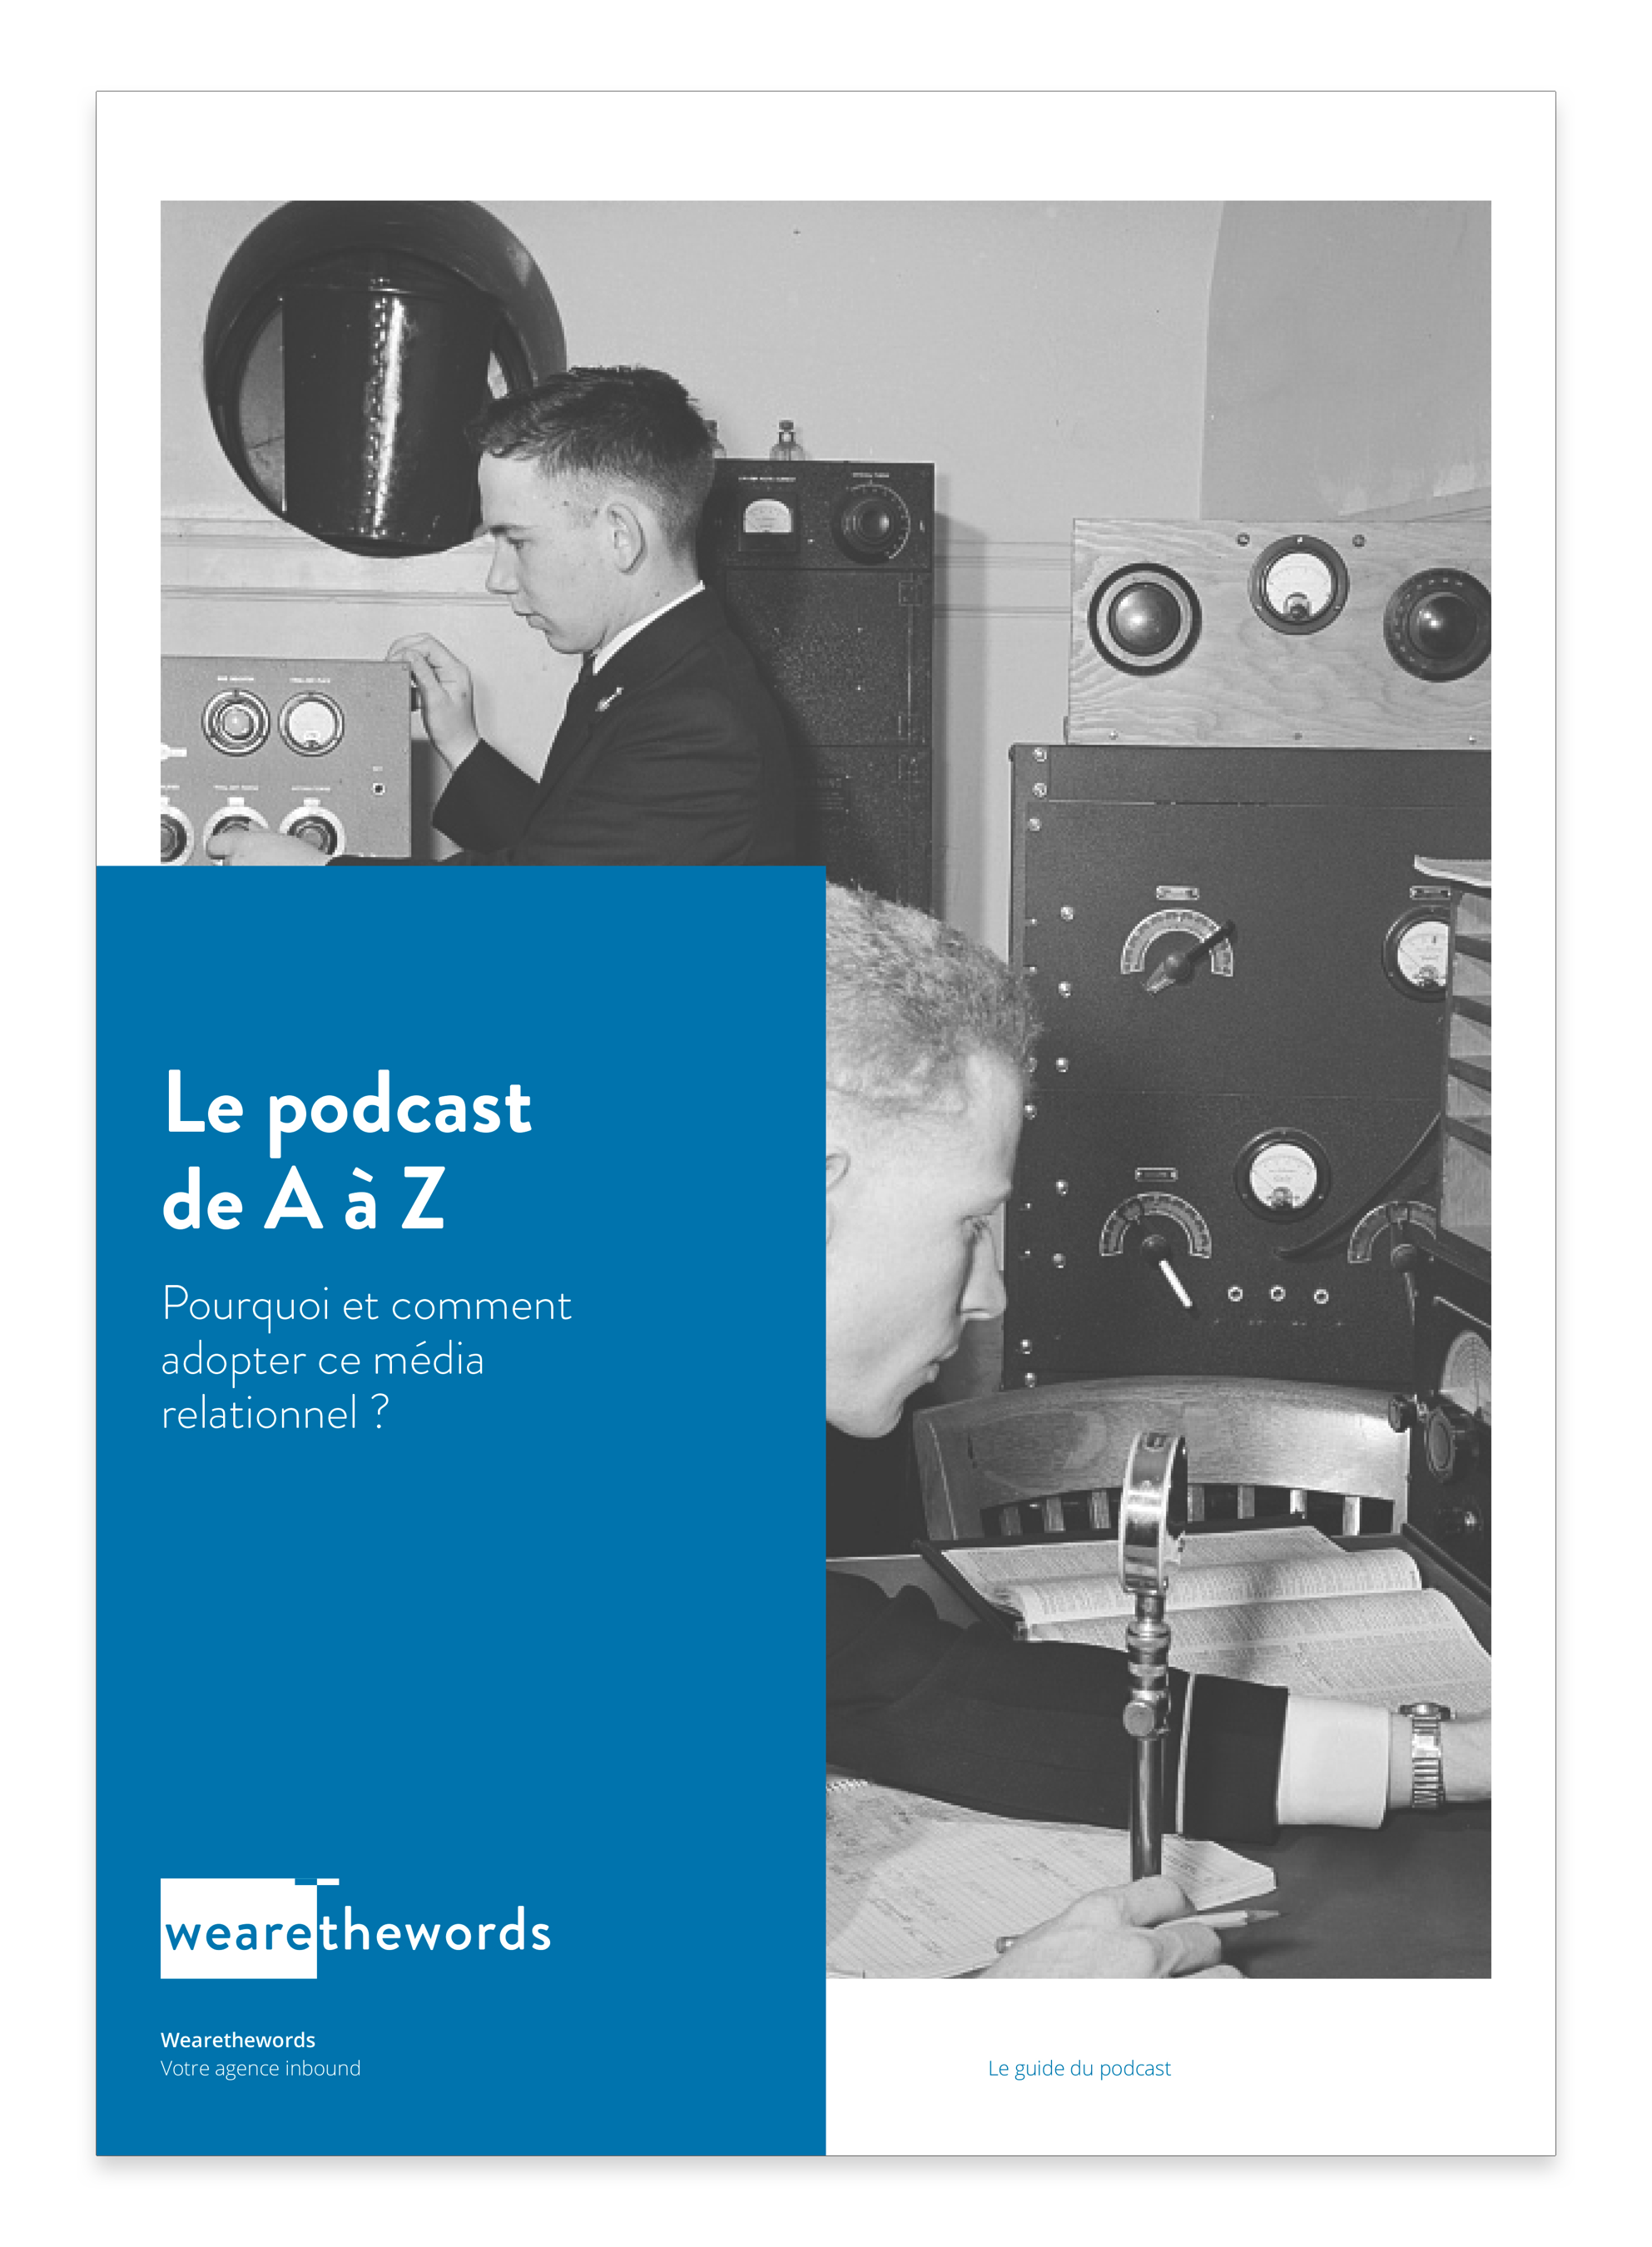 Le podcast, de A à Z – Pourquoi et comment adopter ce média relationnel ?